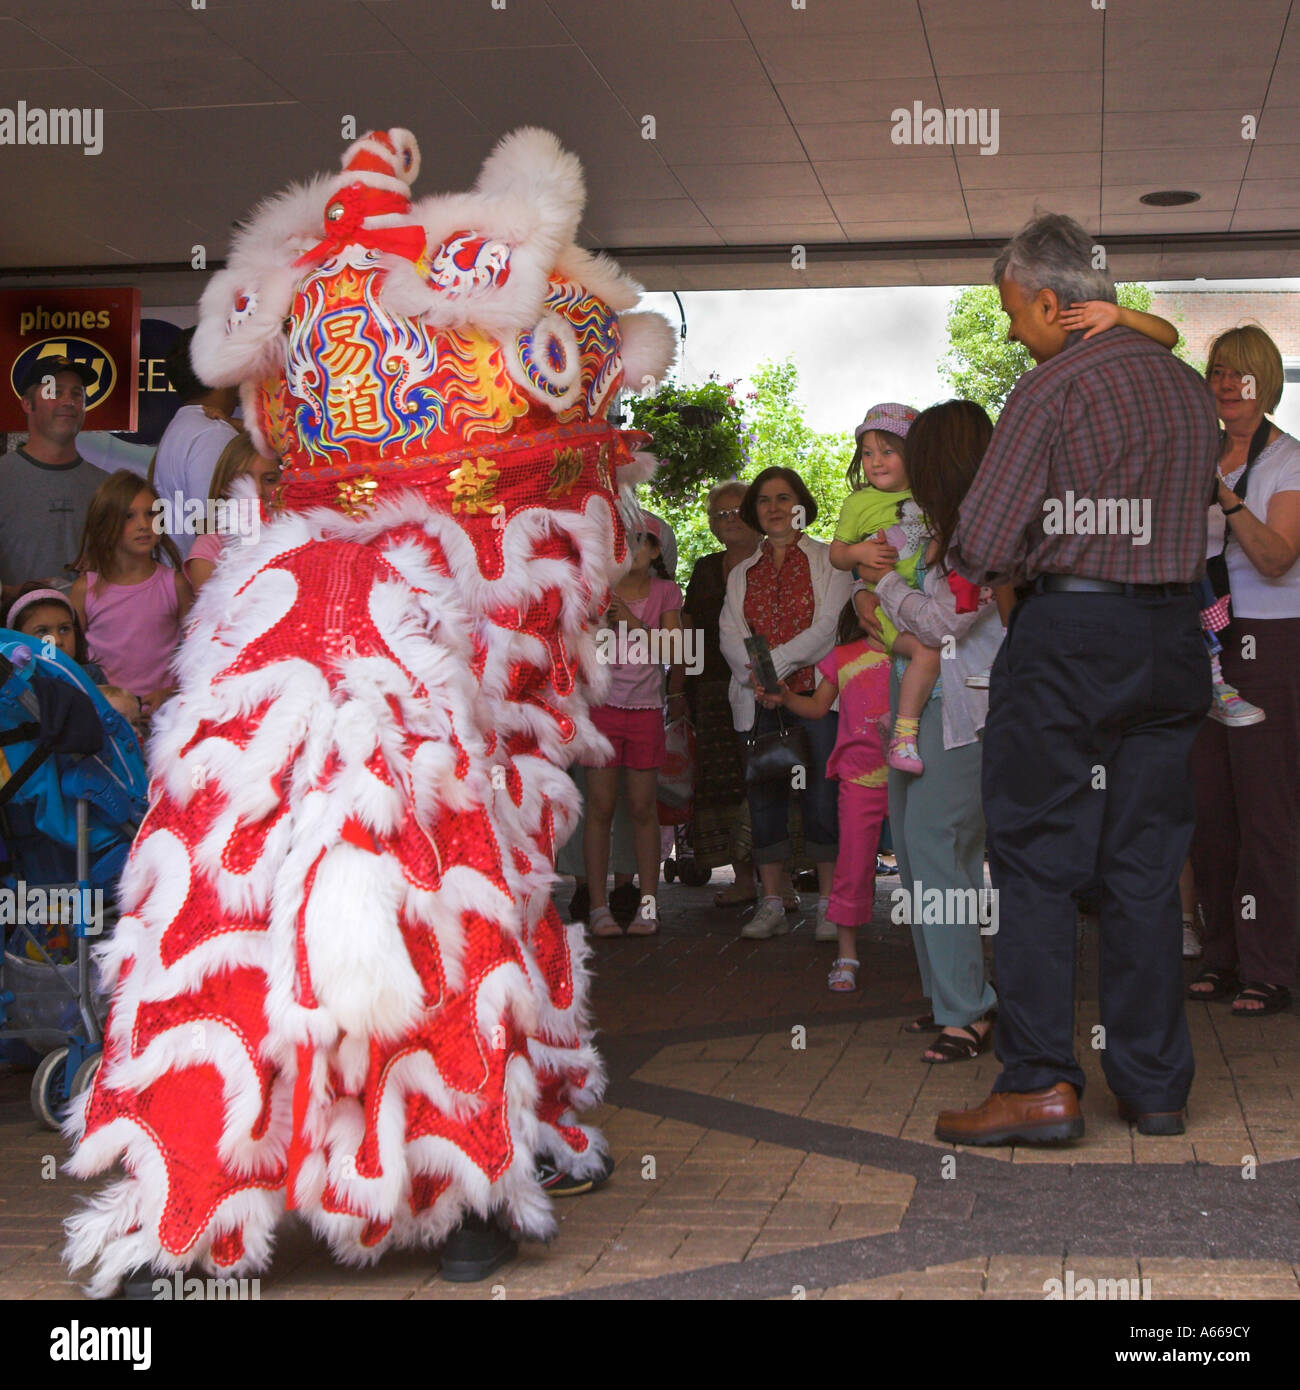 Malaysian Lion Dance entertaining children and shoppers - Stock Image